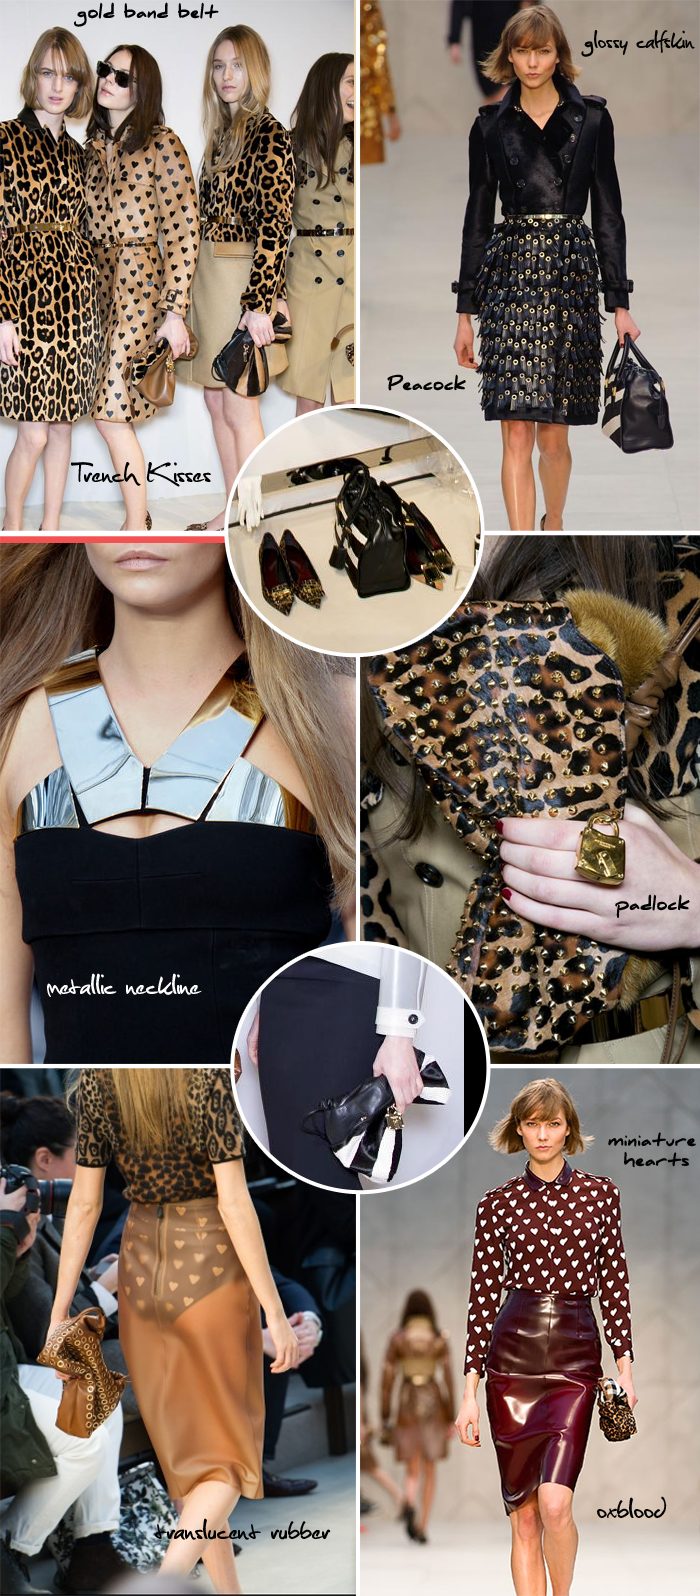 London Fashion Week AW13 : Details Part 1 | The Guilty Hyena